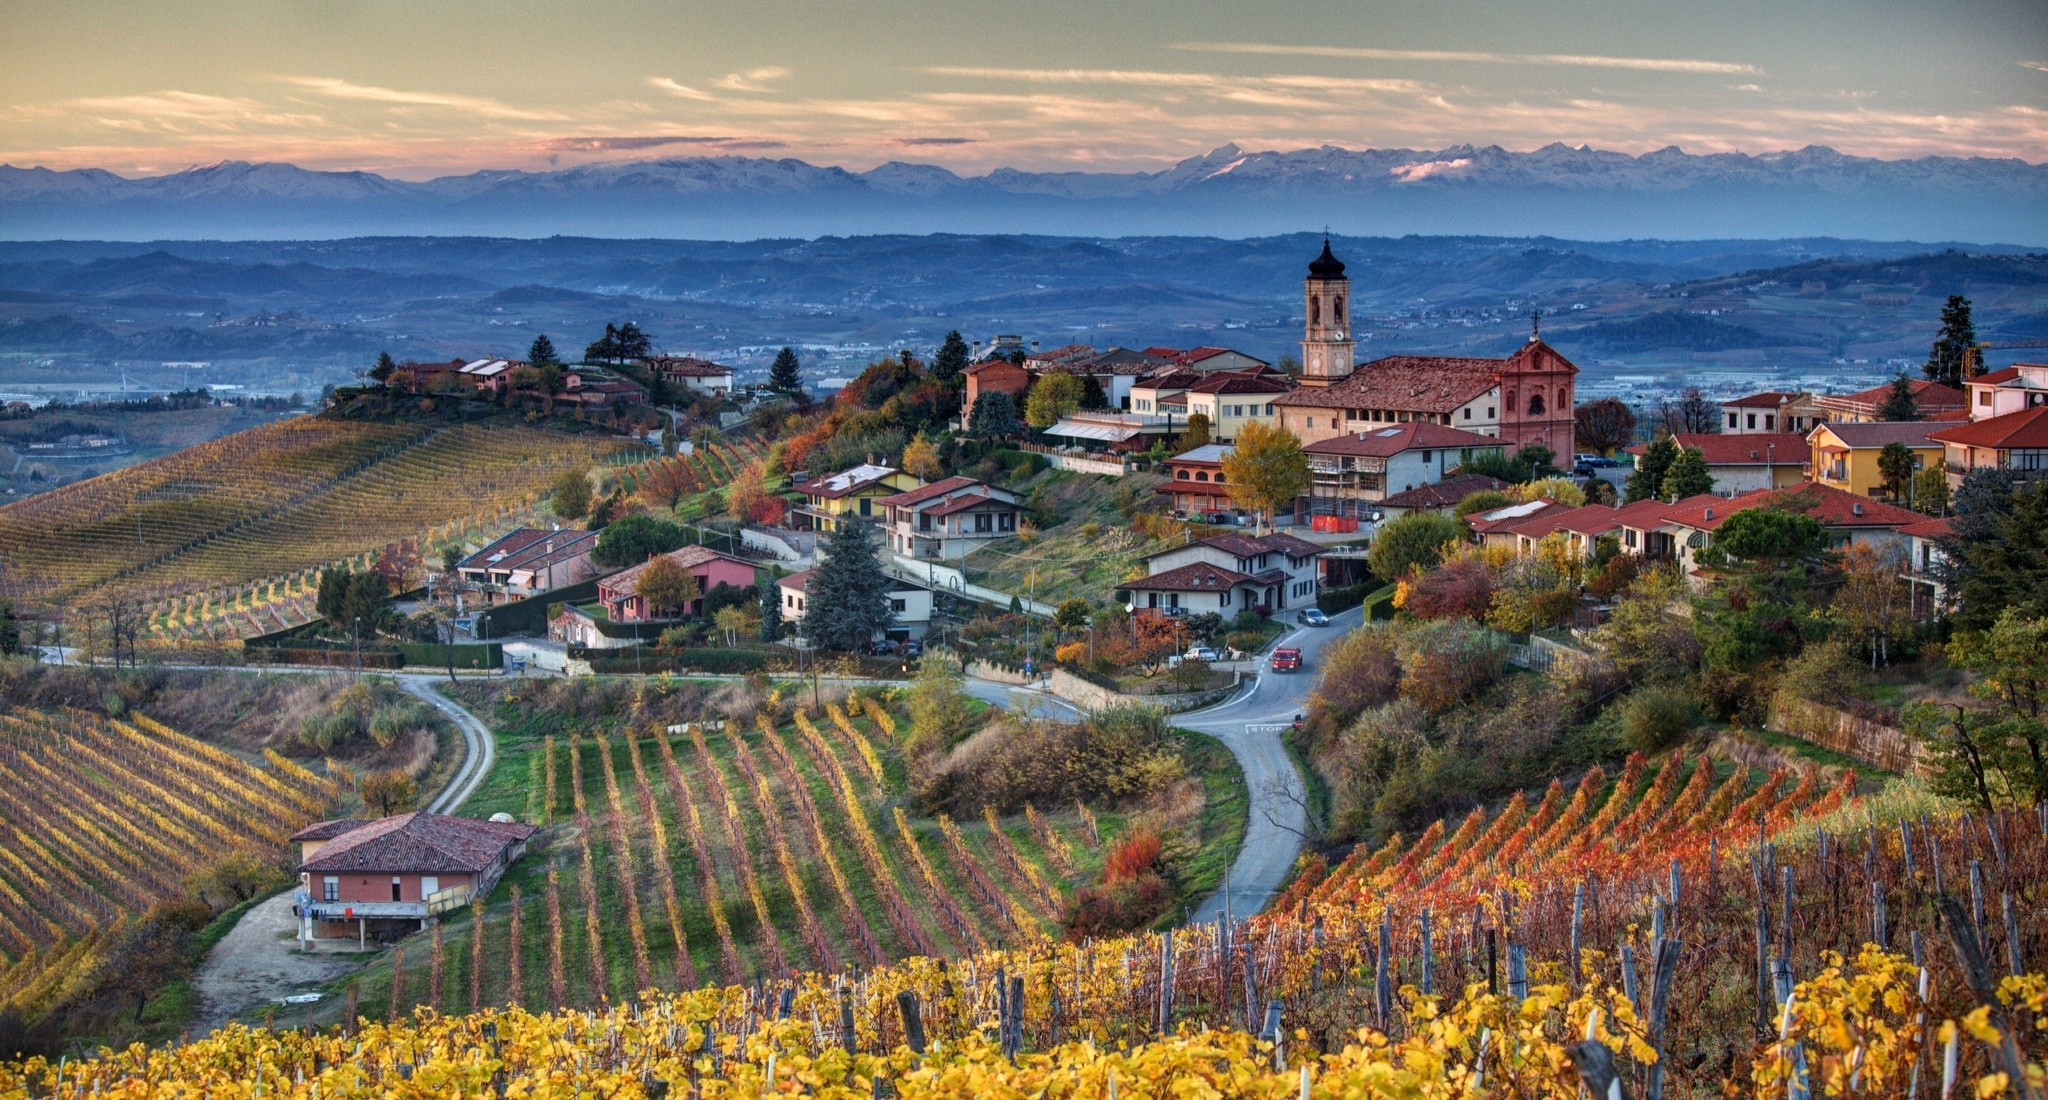 World___Italy_Italia_Italy_Piemonte_Treiso_landscapes_wallpaper_043386_